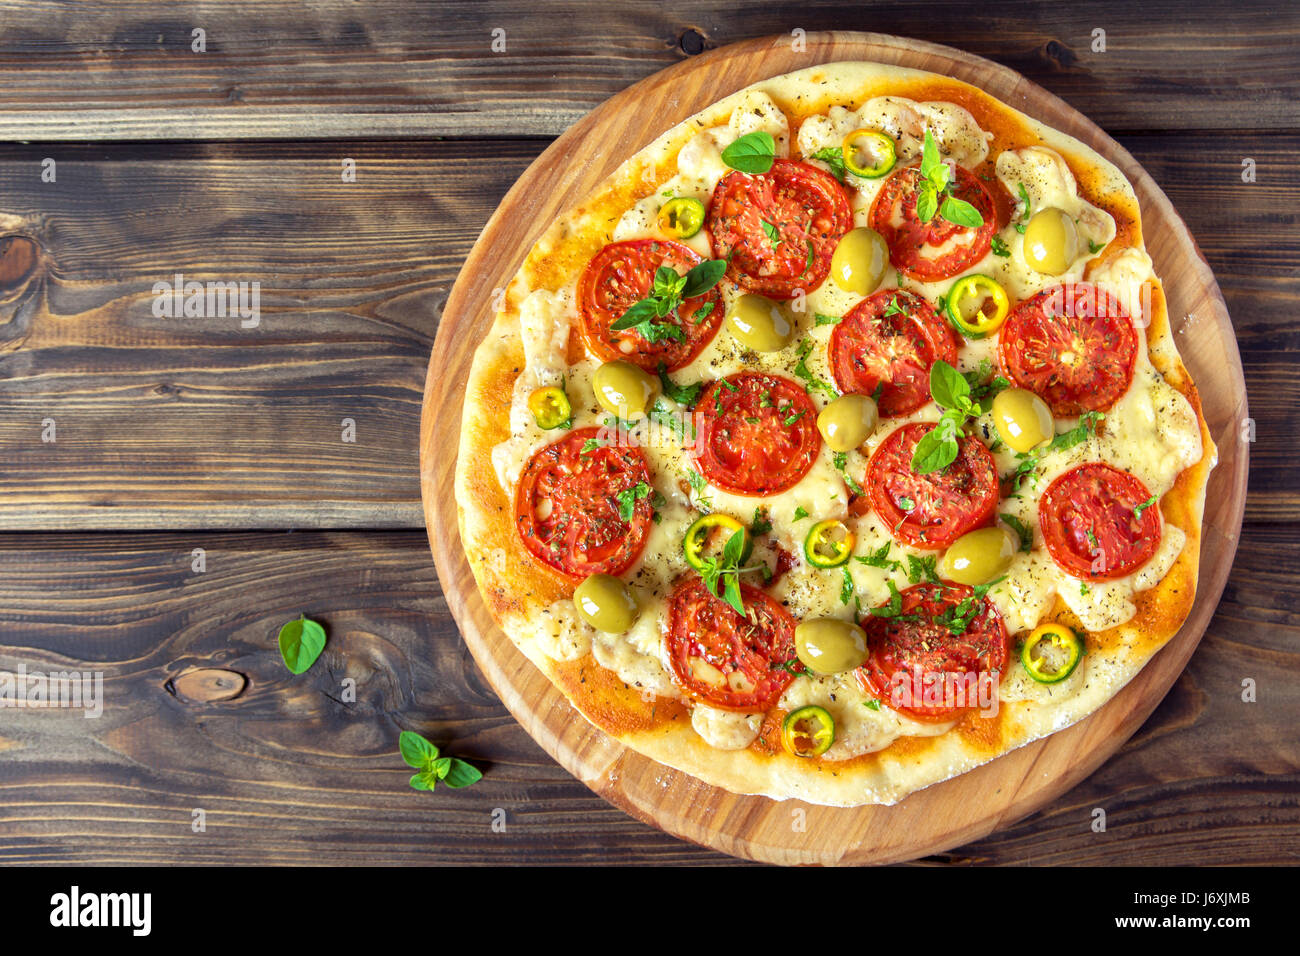 Italian Pizza with Tomatoes, Pepper, green Olives, Oregano and Mozzarella Cheese close up. Fresh Homemade Vegetable - Stock Image